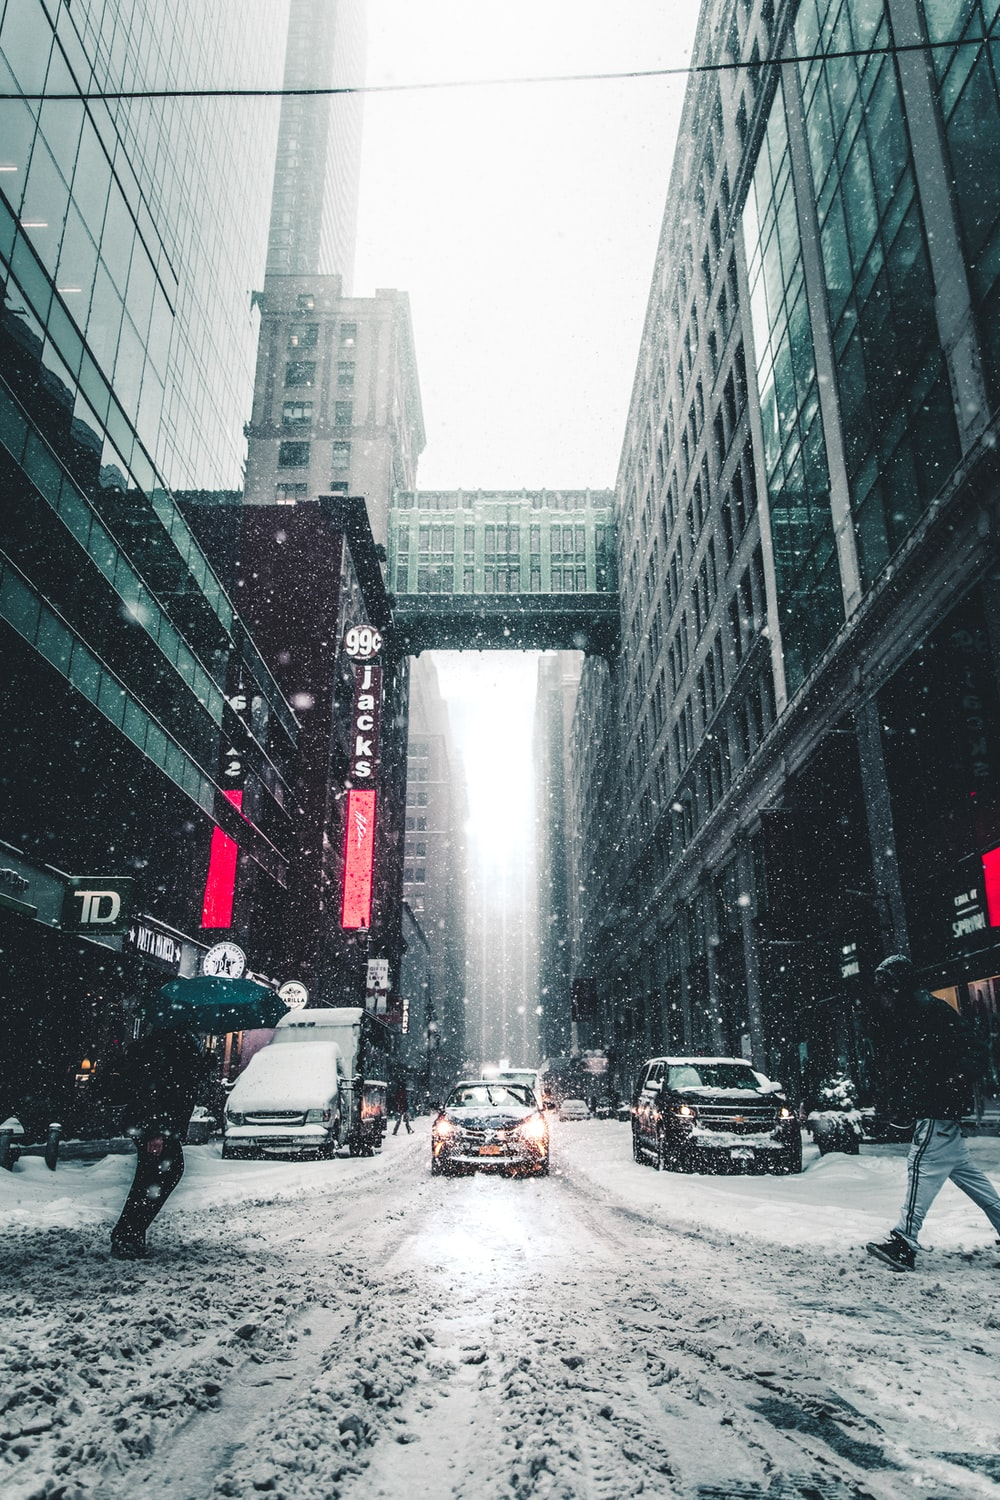 450 Winter City Pictures Download Free Images On Unsplash